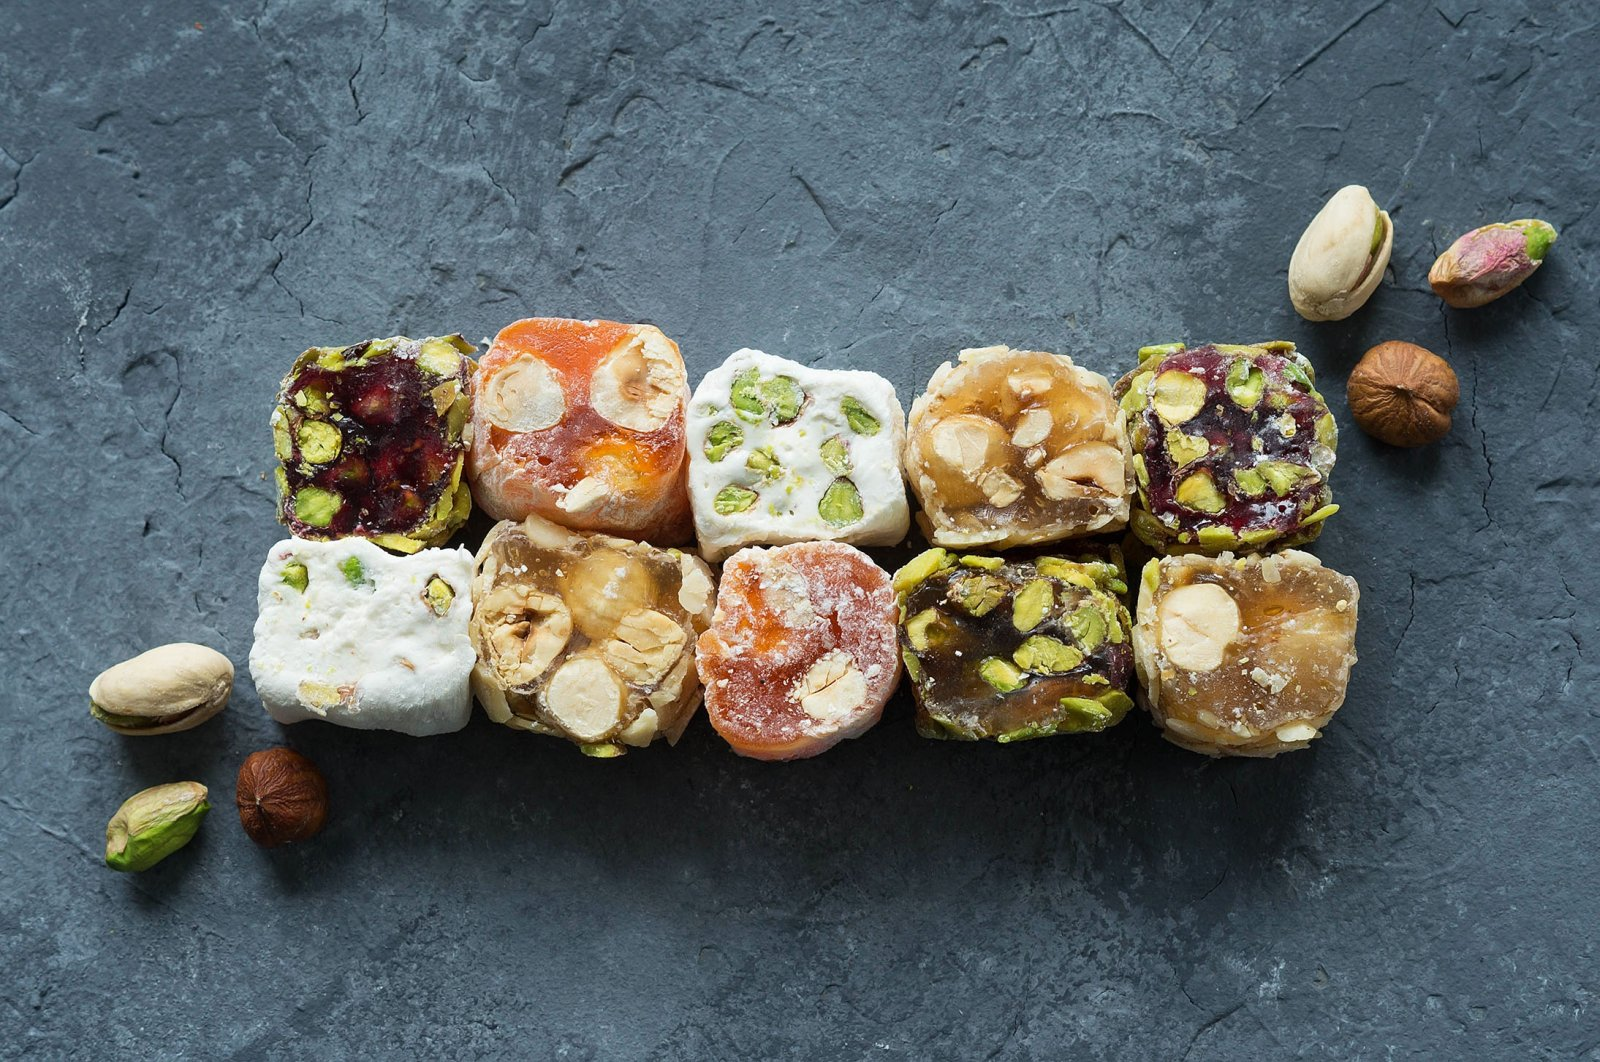 You can make many flavor and texture combinations with Turkish delight. (Shutterstock Photo)